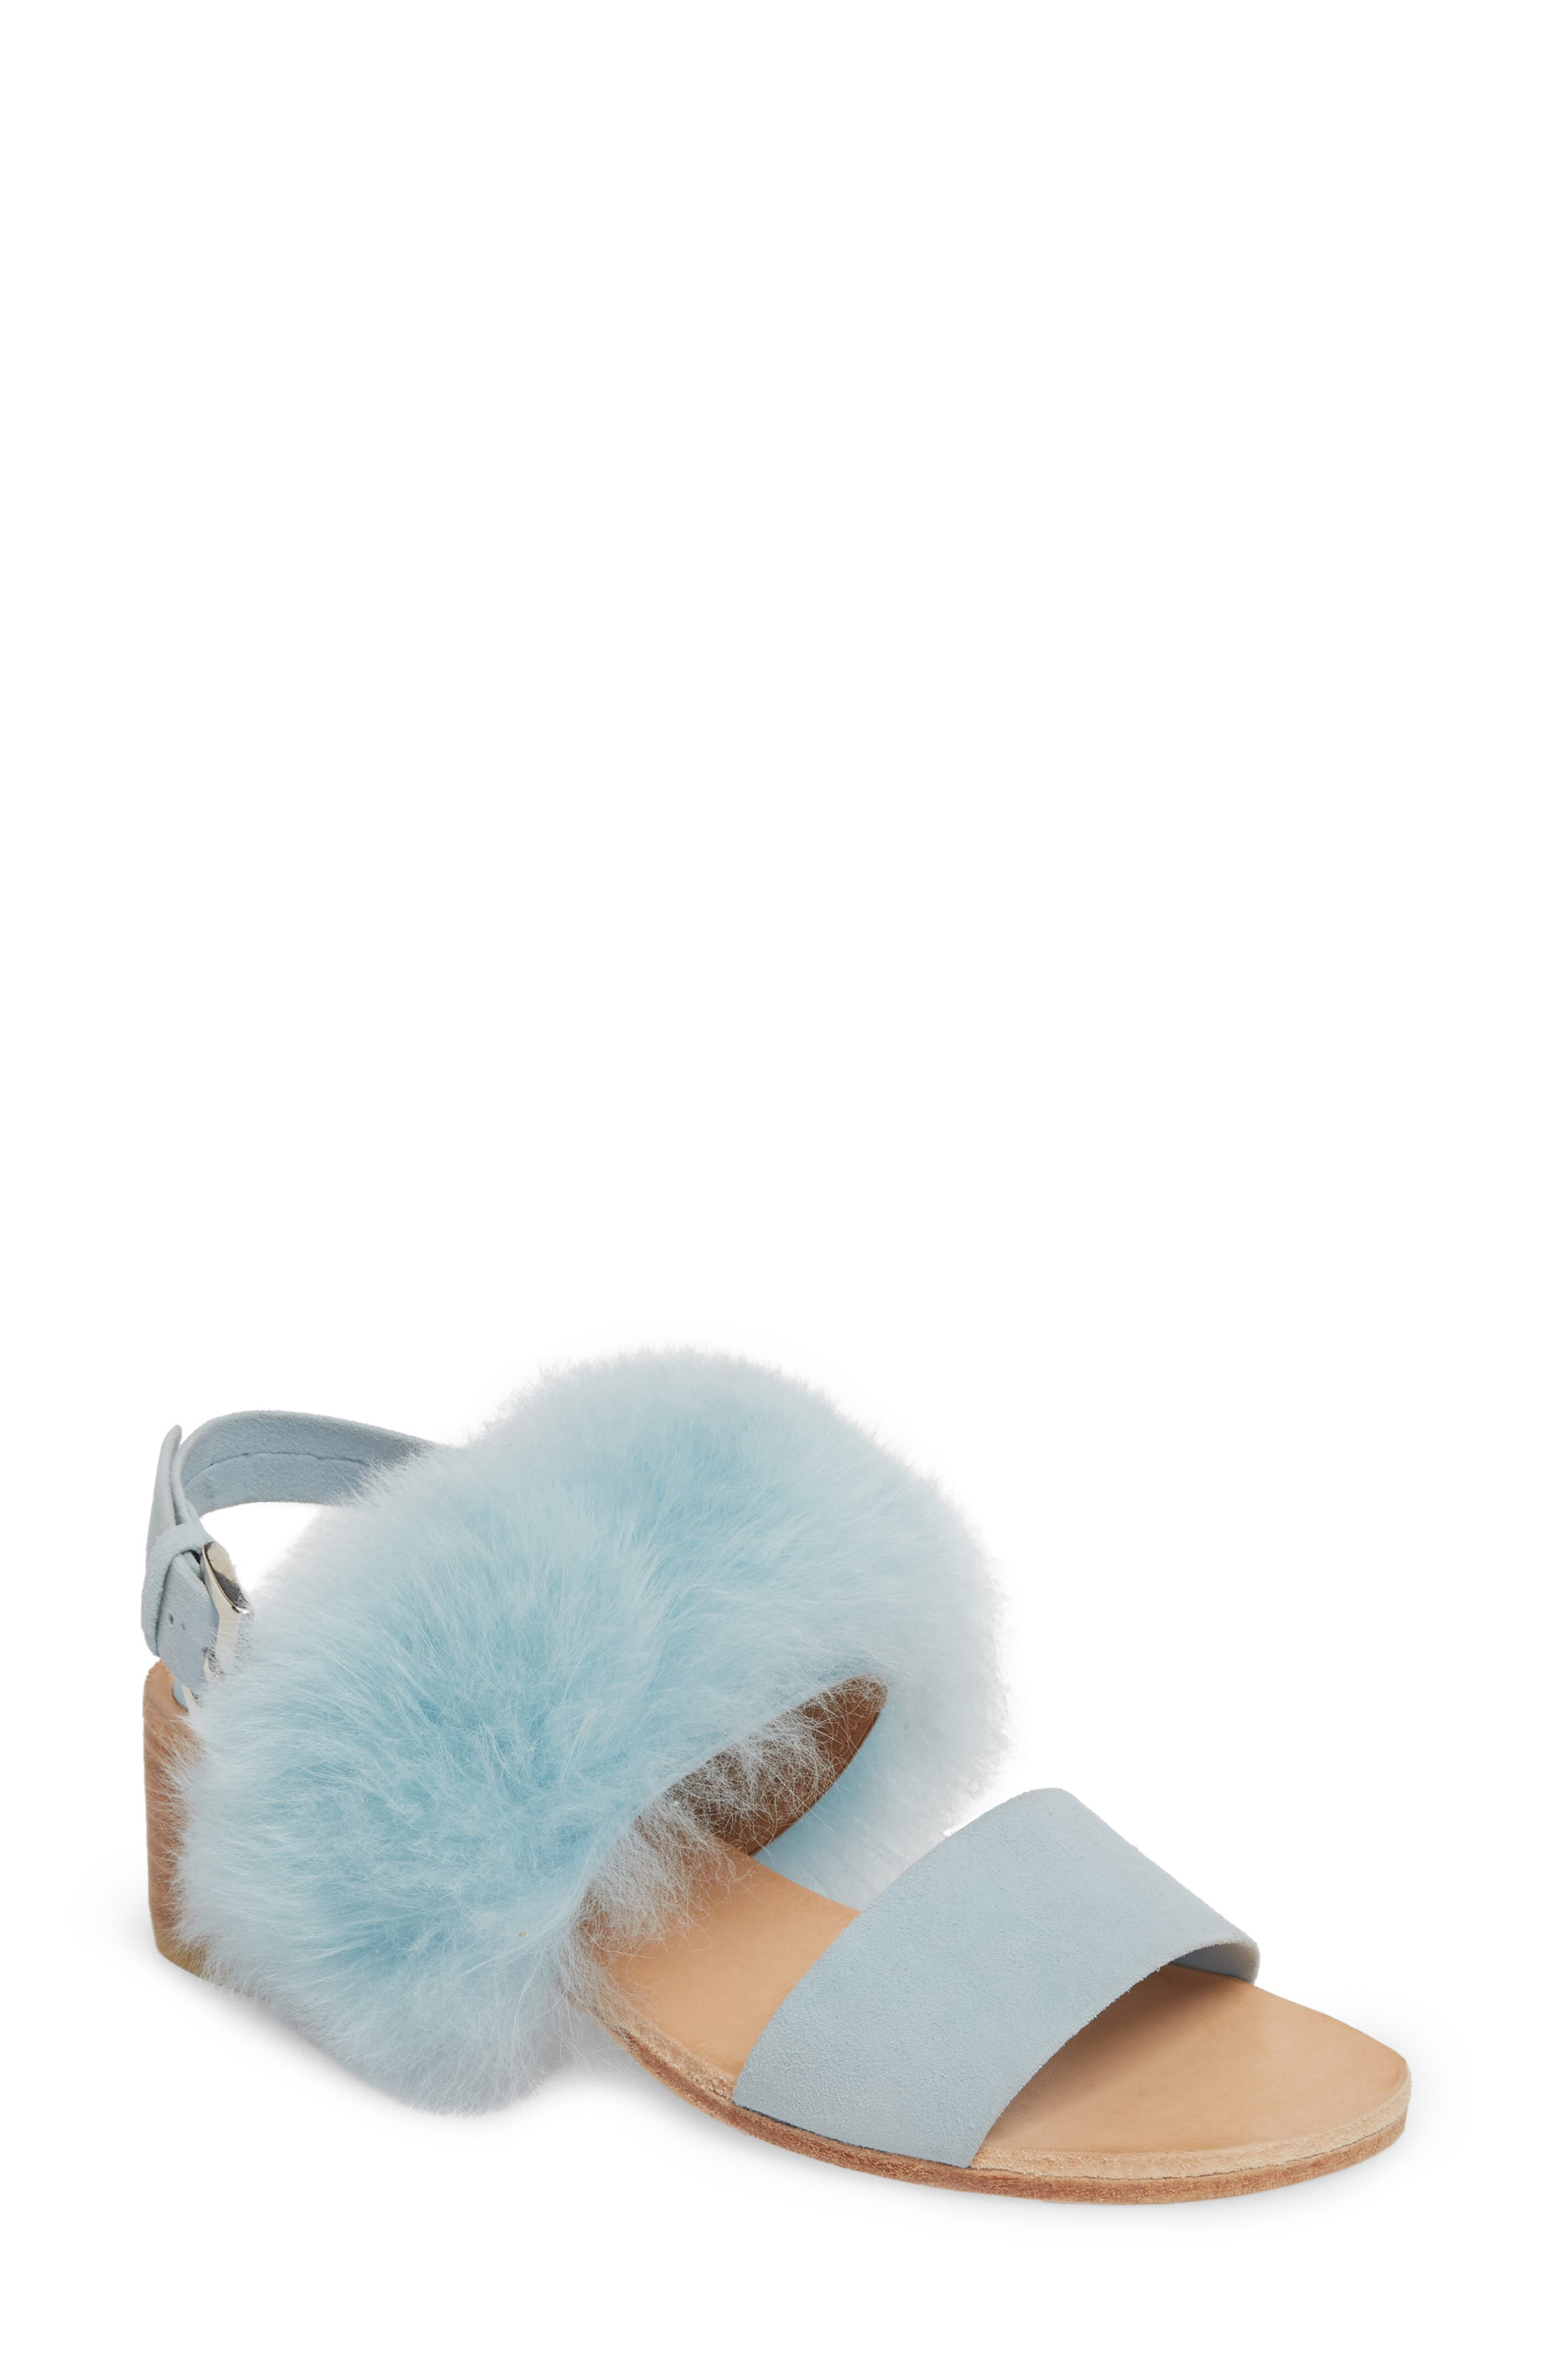 Clemence Genuine Alpaca Fur Sandal,                         Main,                         color, Pastel Blue Suede